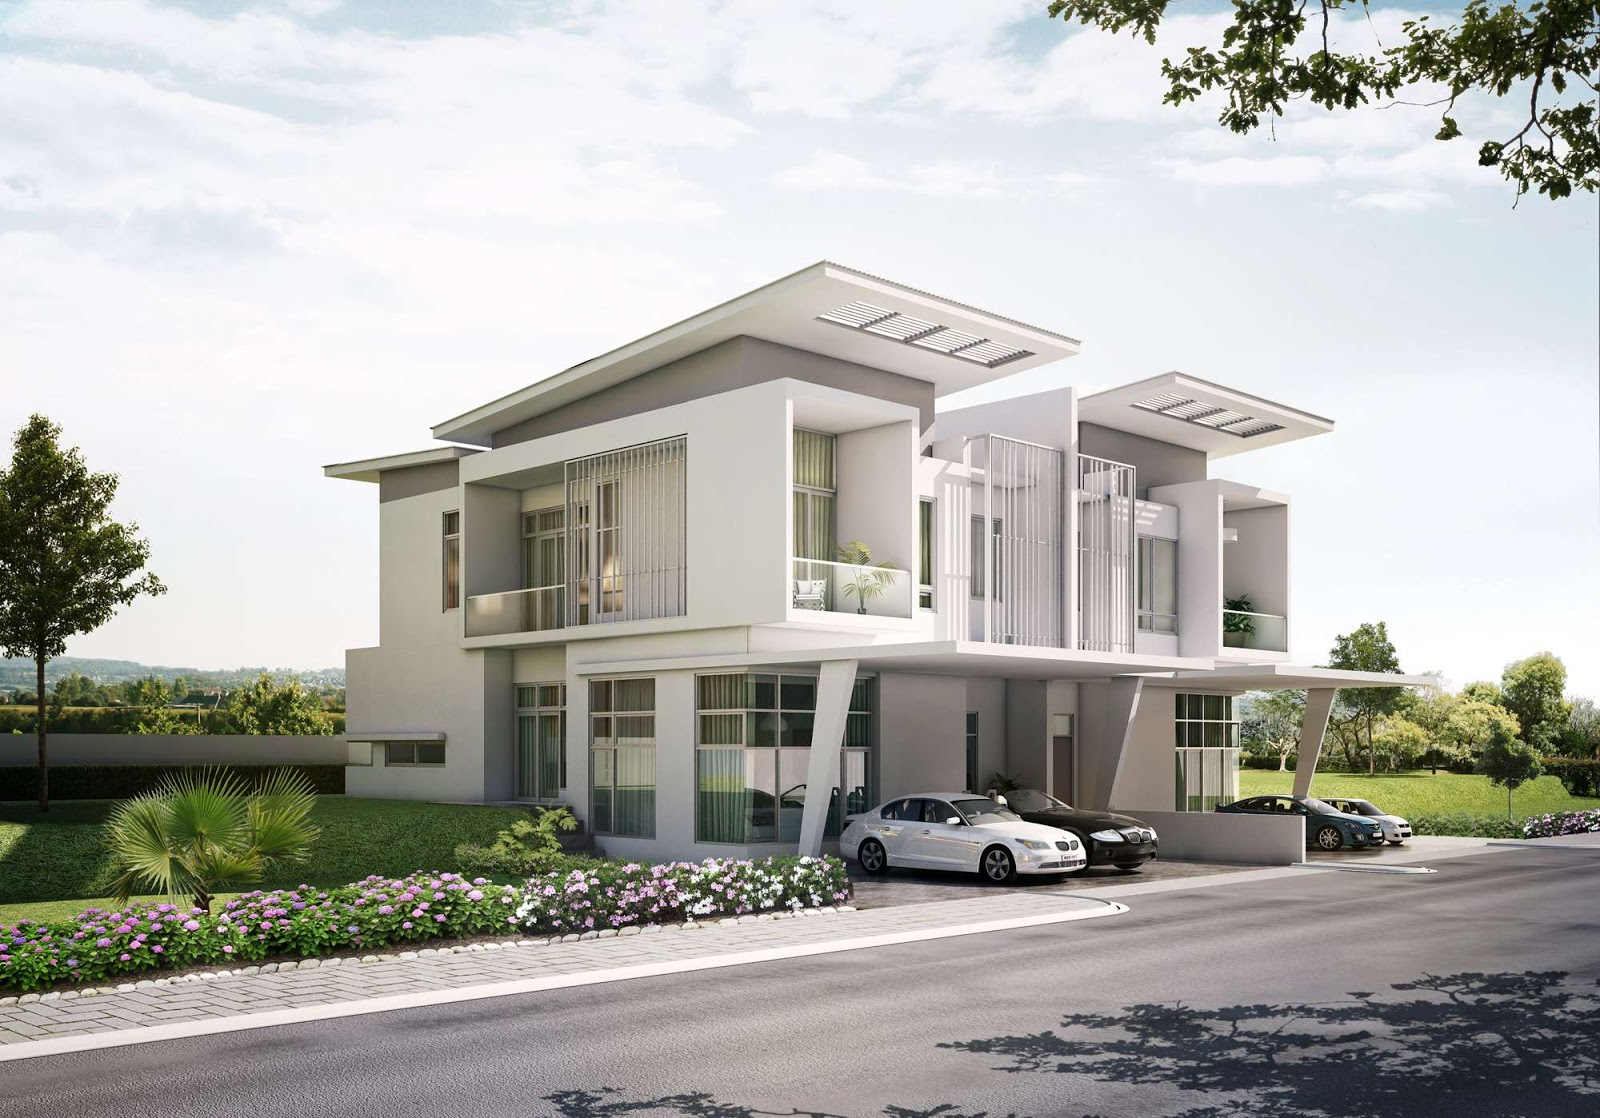 New home designs latest singapore modern homes exterior for Best front design of home